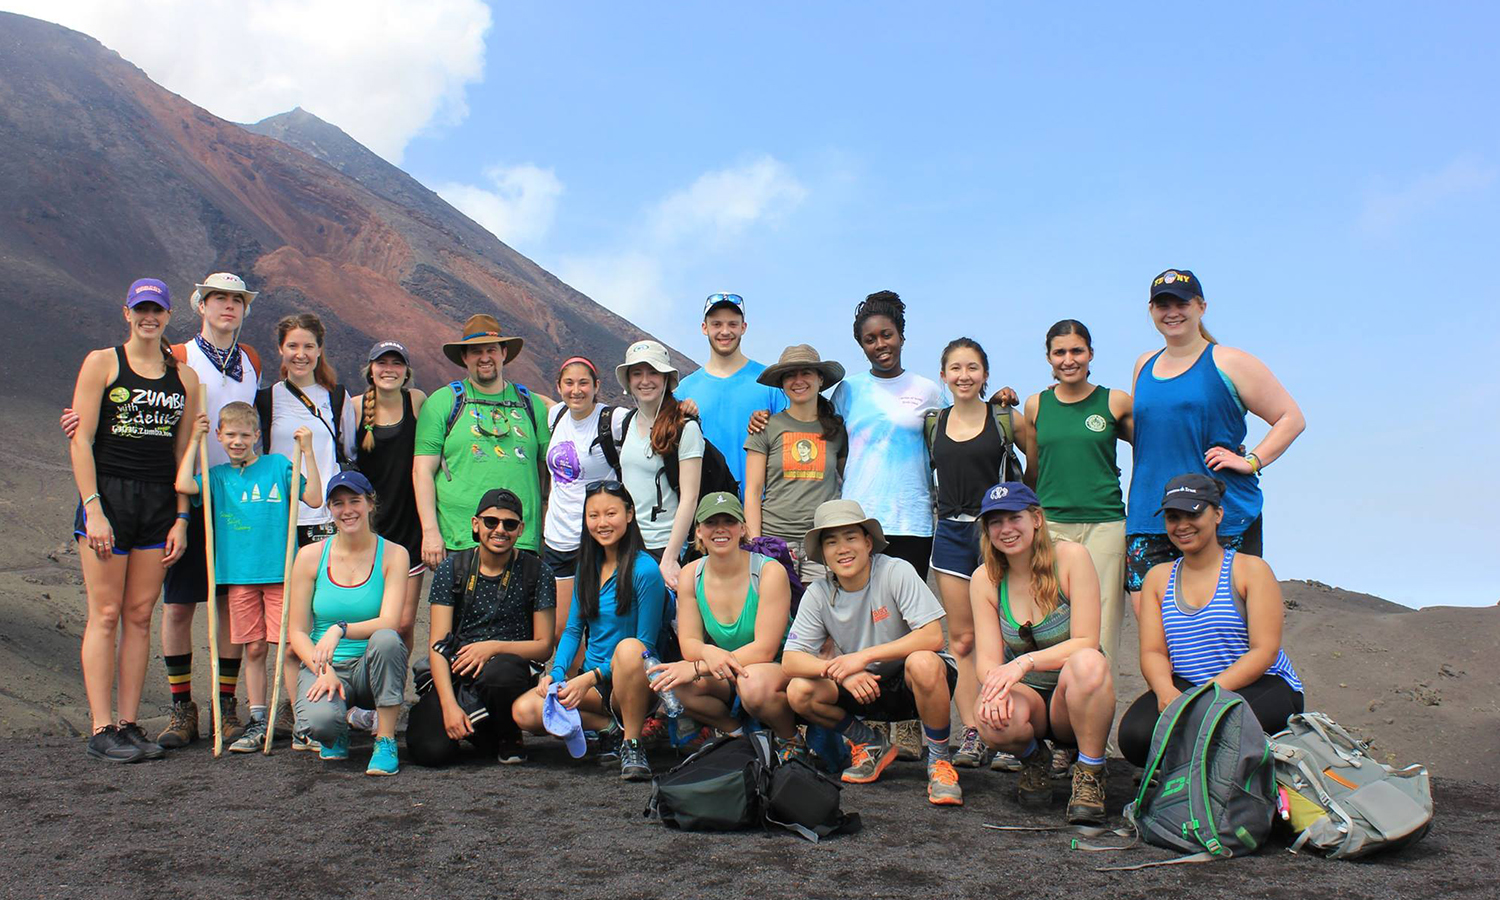 HWS students gather at the top of the Pacaya Volcano while studying abroad in Guatemala with Assistant Professor of Psychology Brien Ashdown and Associate Professor of Biology Meghan Brown. With the No. 1 study abroad program in the country according to Princeton Review, first-years are encouraged to attend information sessions hosted by the Center for Global Education.